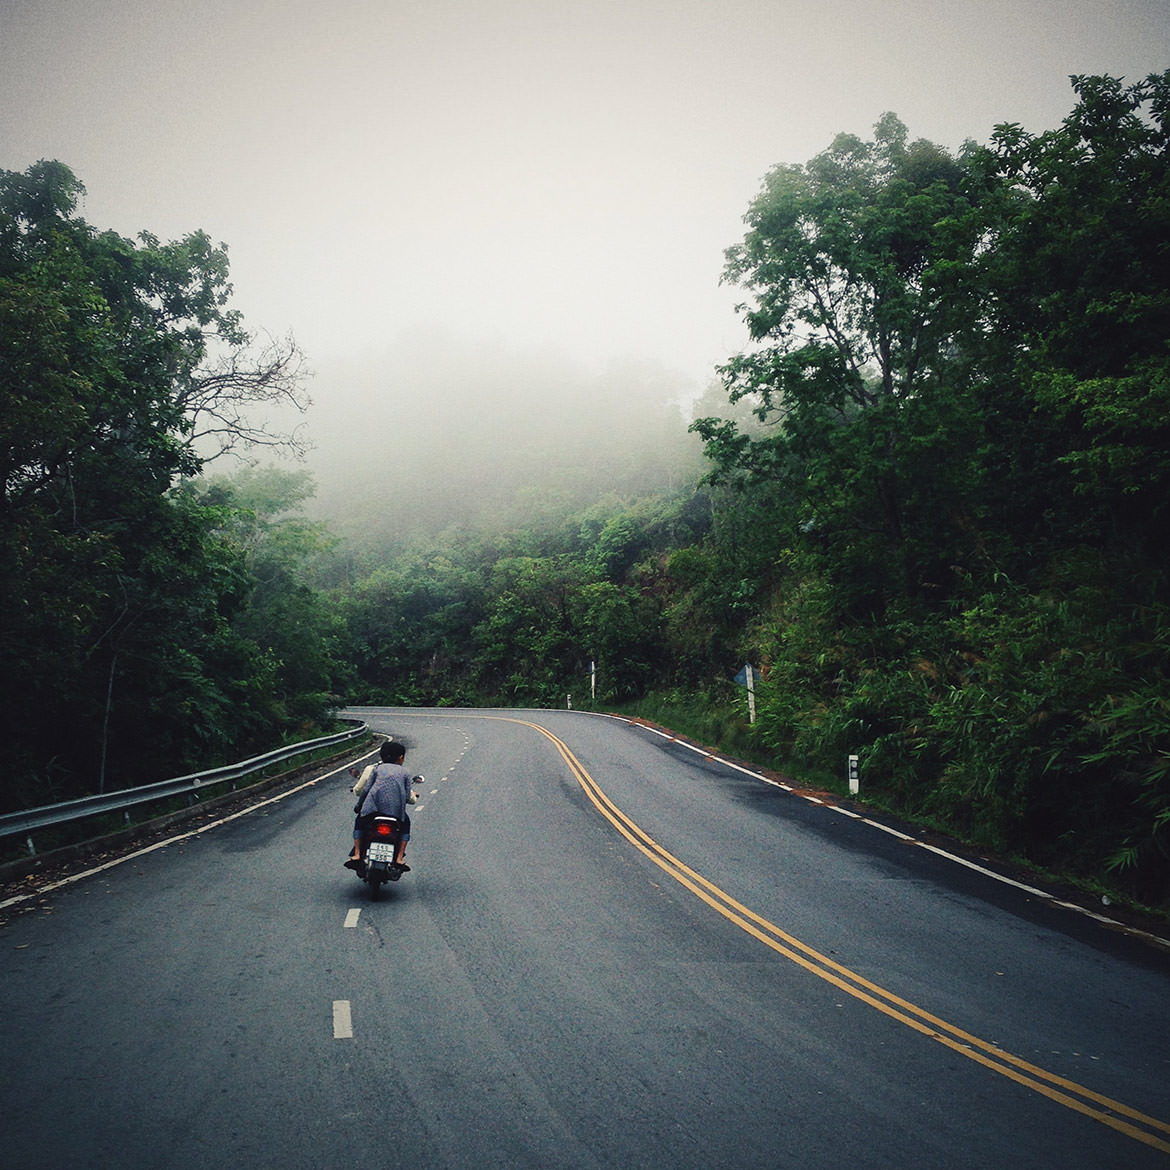 The road up Doi Suthep Mountain in Chiang Mai, Thailand